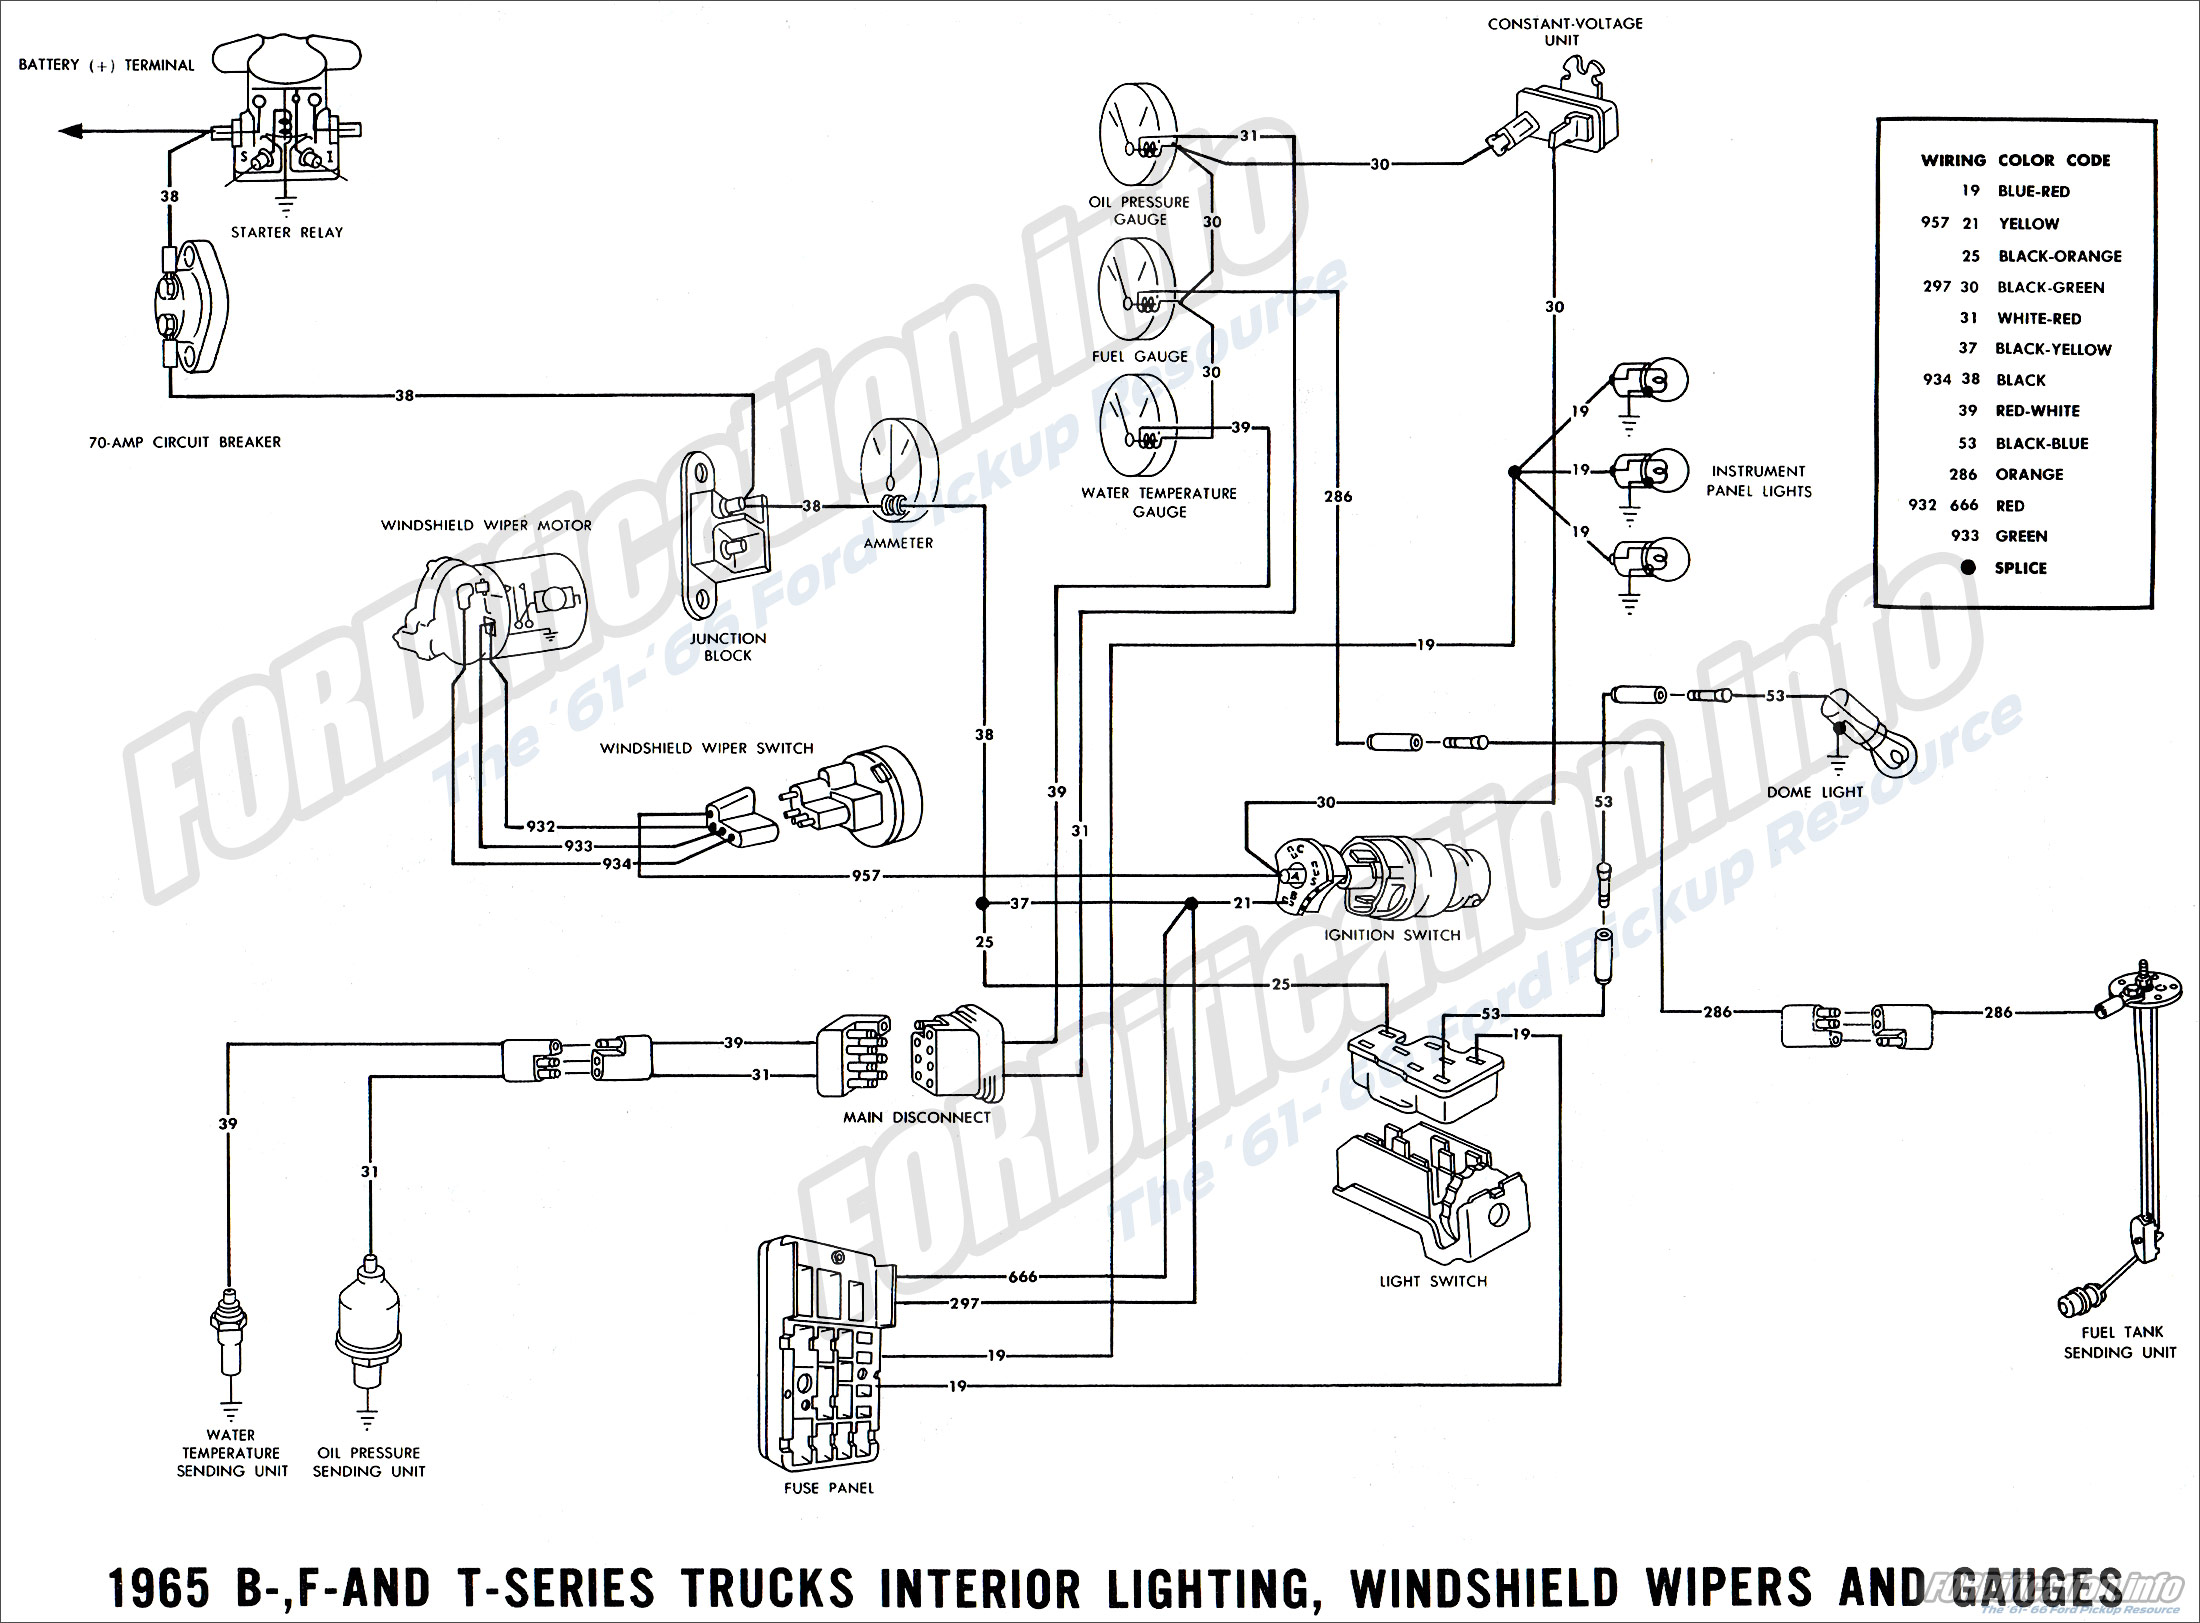 ford 4000 tractor wiring diagram 2003 vw passat 1965 truck diagrams - fordification.info the '61-'66 pickup resource